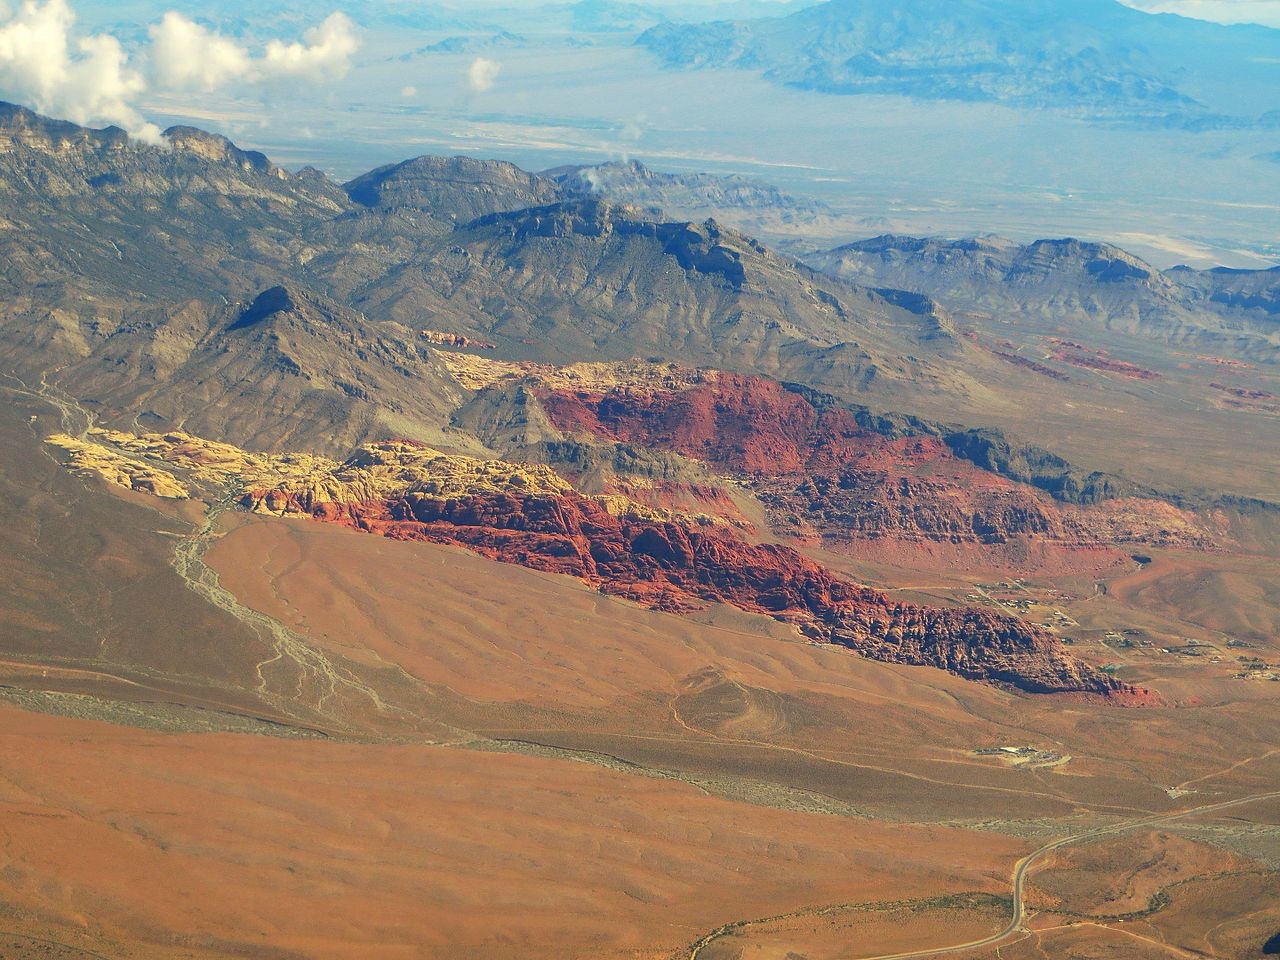 Incredible Place To Visit In Nevada, Red Rock Canyon National Conservation Area-Keystone Thrust Trail